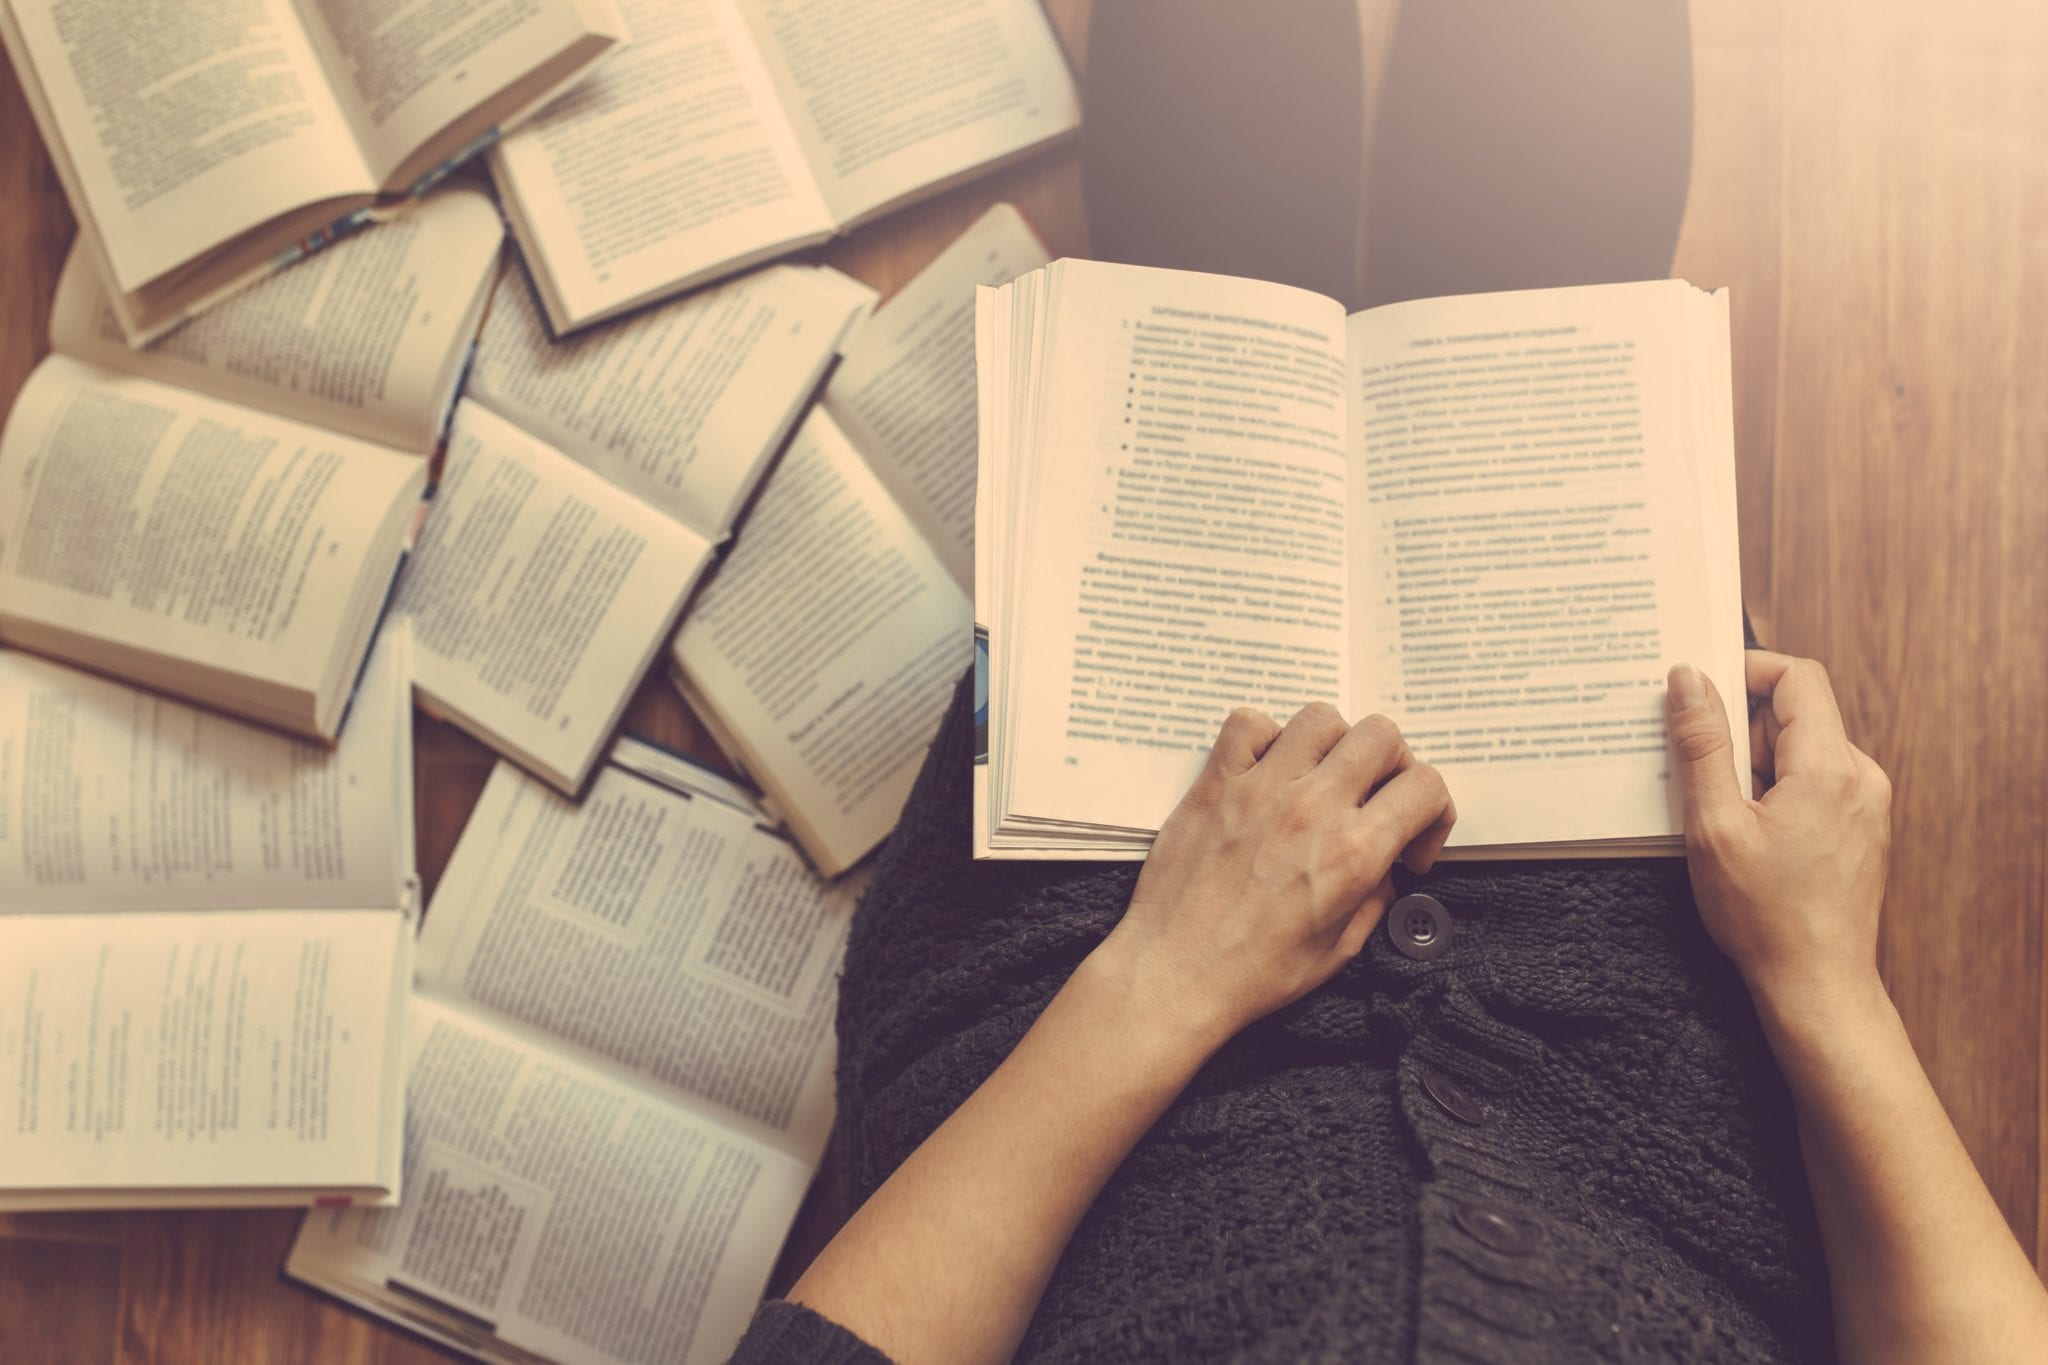 5 Books For Understanding Reading >> 5 Reasons To Make Reading More Books A Goal For 2018 Cypress Lawn